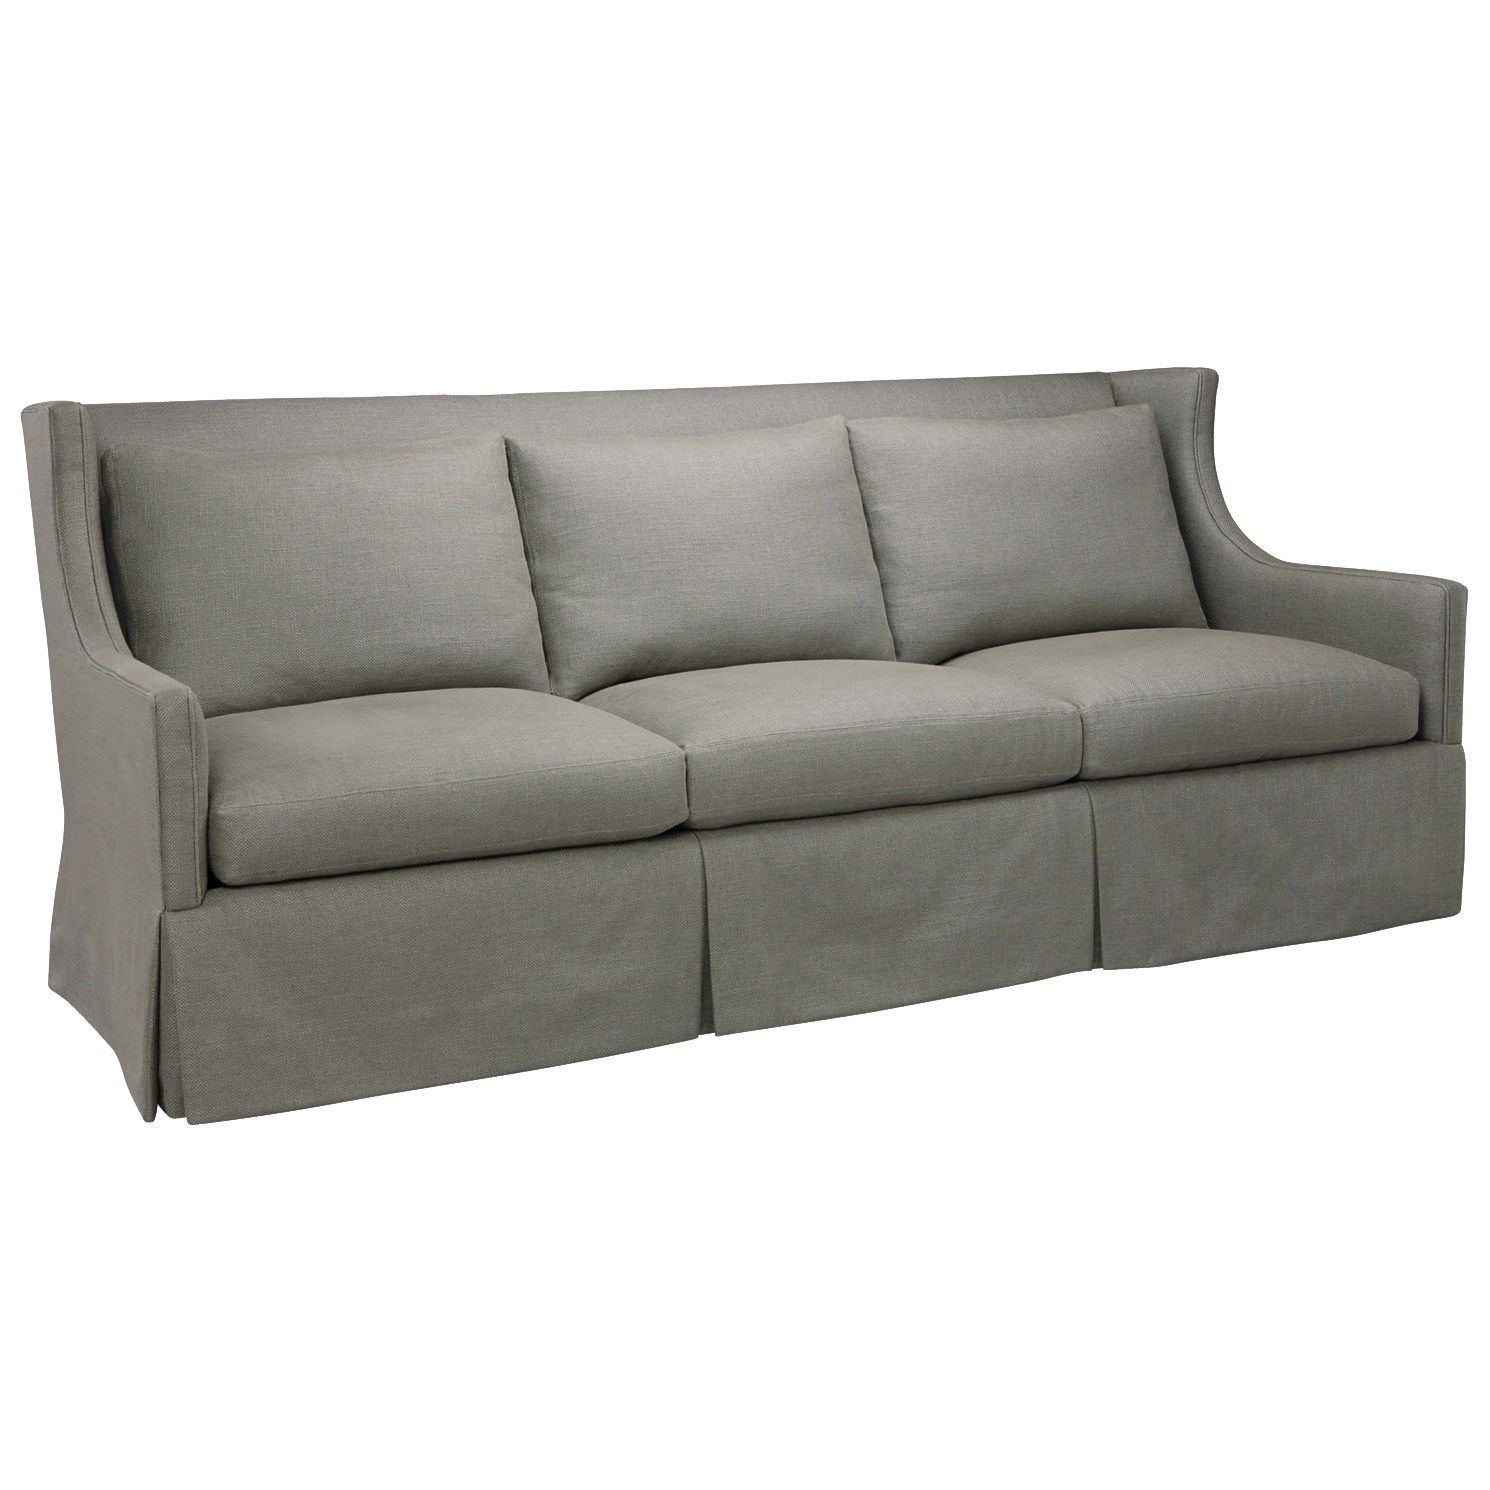 Home Family Rooms Decor House Oakdale Sofa At Home Furniture Store Sofa Lee Industries Sofa